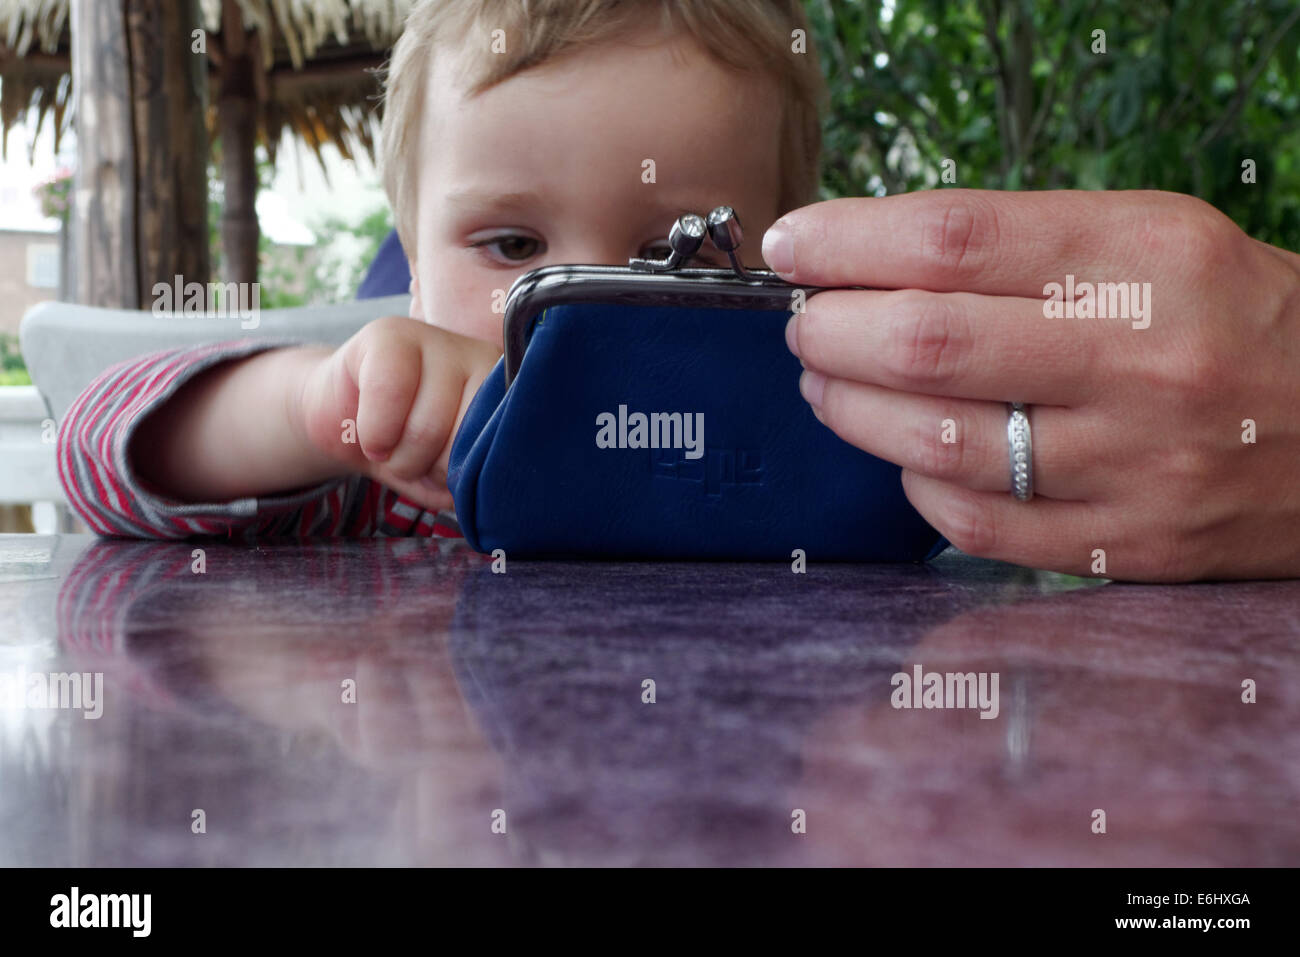 A two year old boy looking at a purse being held by the mother's hand - Stock Image